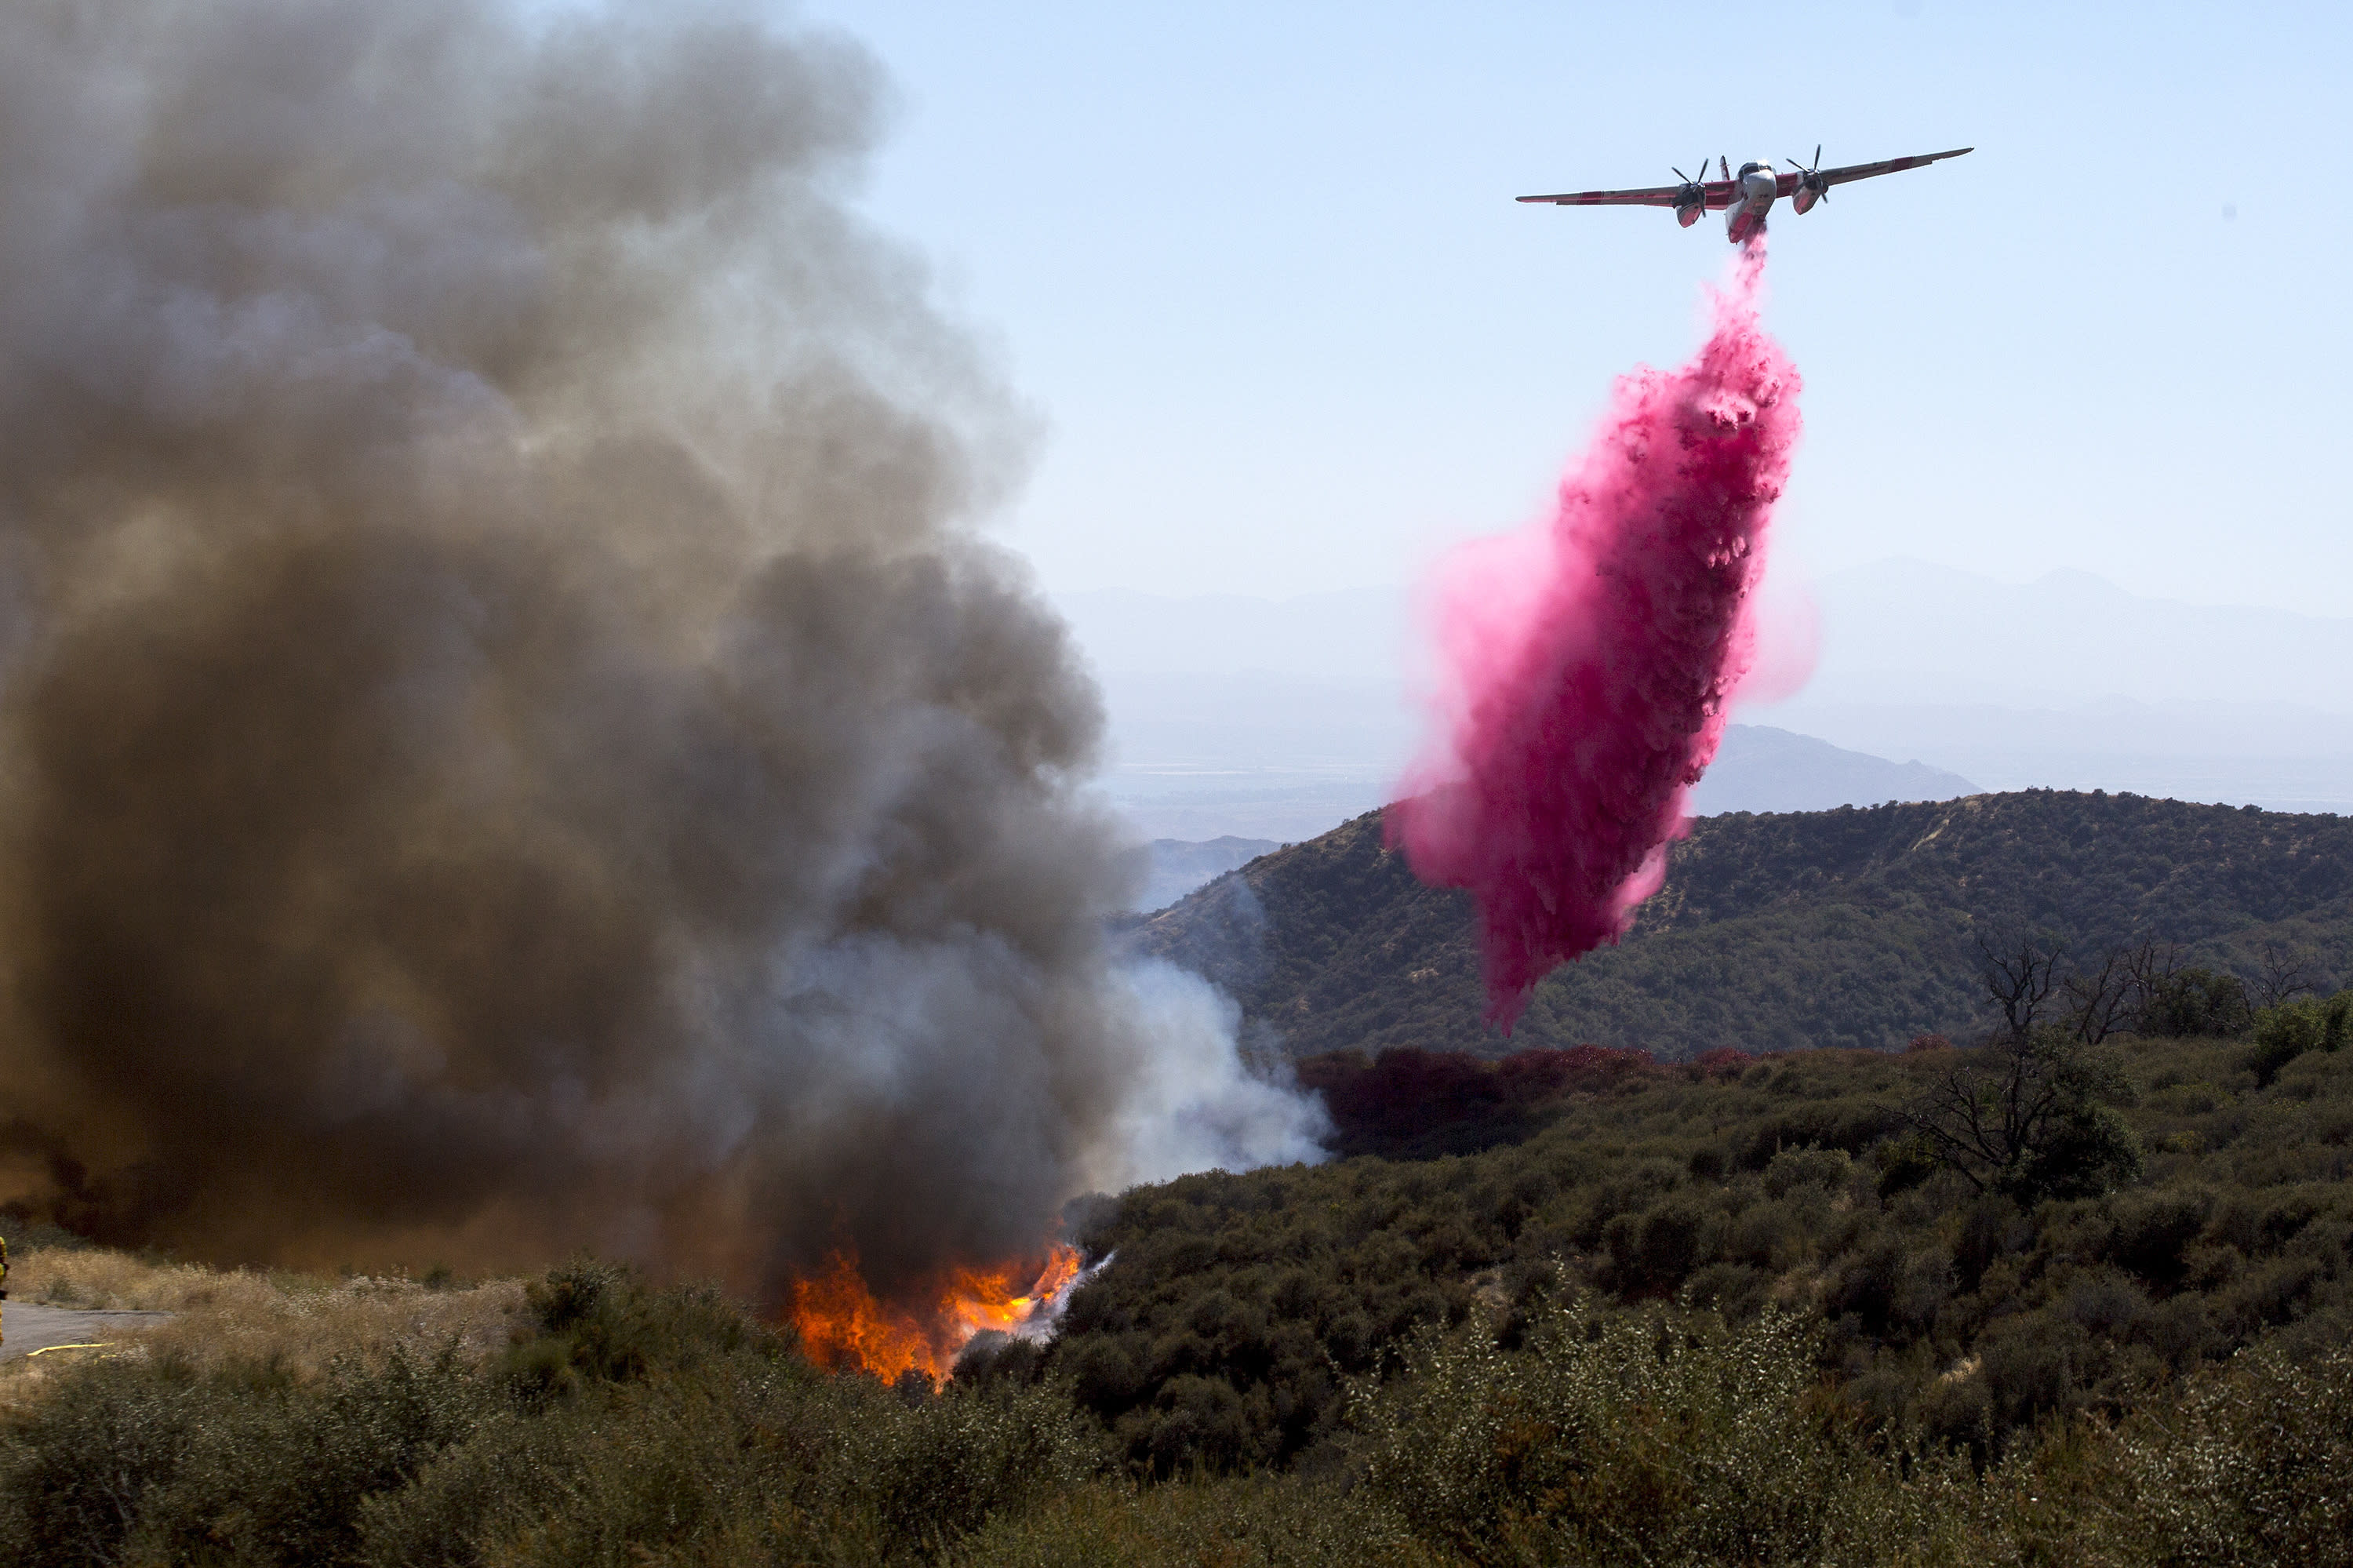 An air tanker drops fire retardant at the Apple Fire in Cherry Valley, Calif., Saturday, Aug. 1, 2020. A wildfire northwest of Palm Springs flared up Saturday afternoon, prompting authorities to issue new evacuation orders as firefighters fought the blaze in triple-degree heat. (AP Photo/Ringo H.W. Chiu)